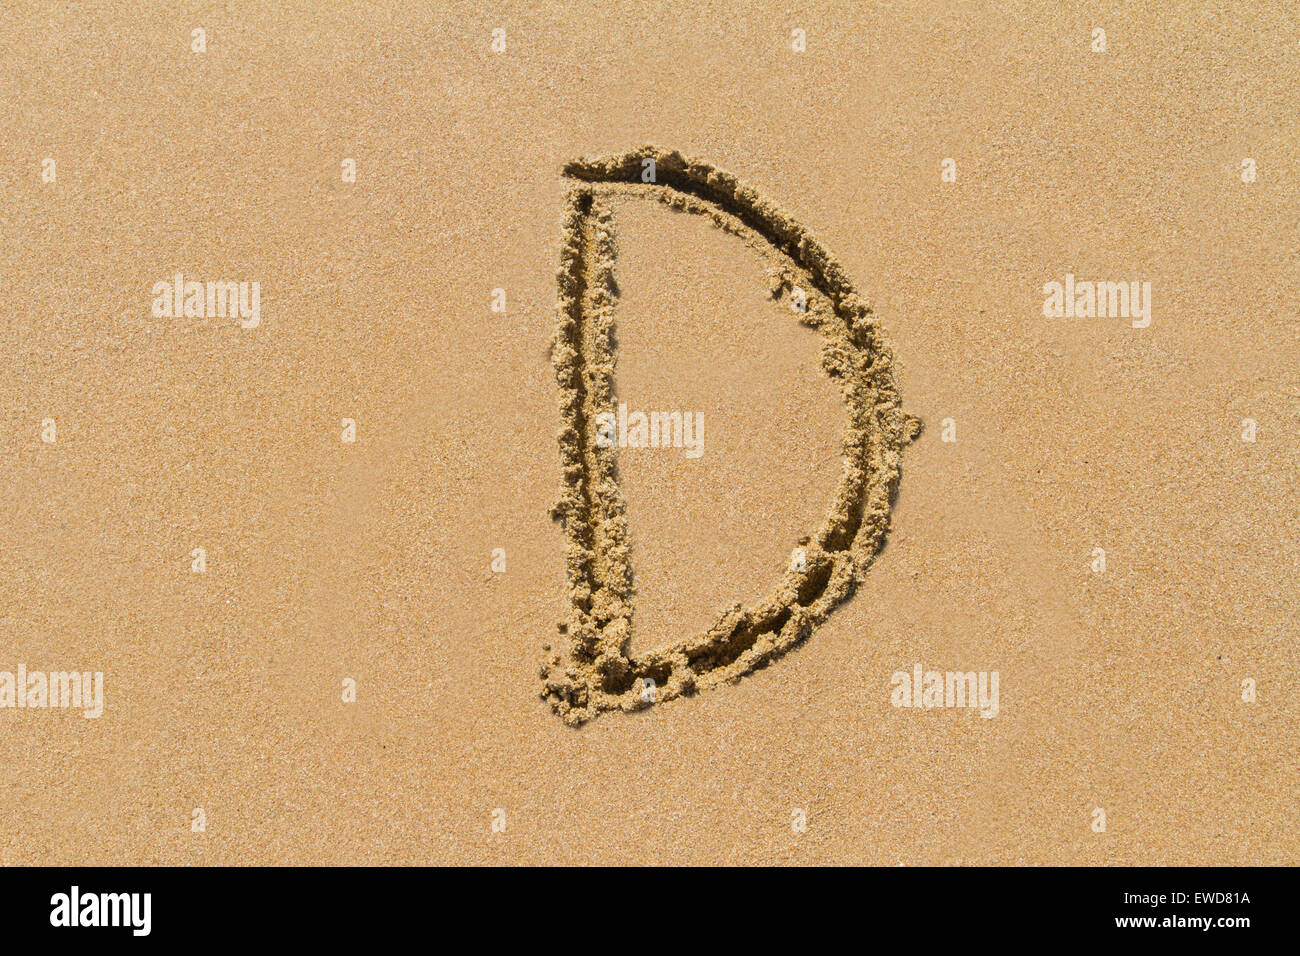 Letter D of the alphabet written on sand with upper case. - Stock Image